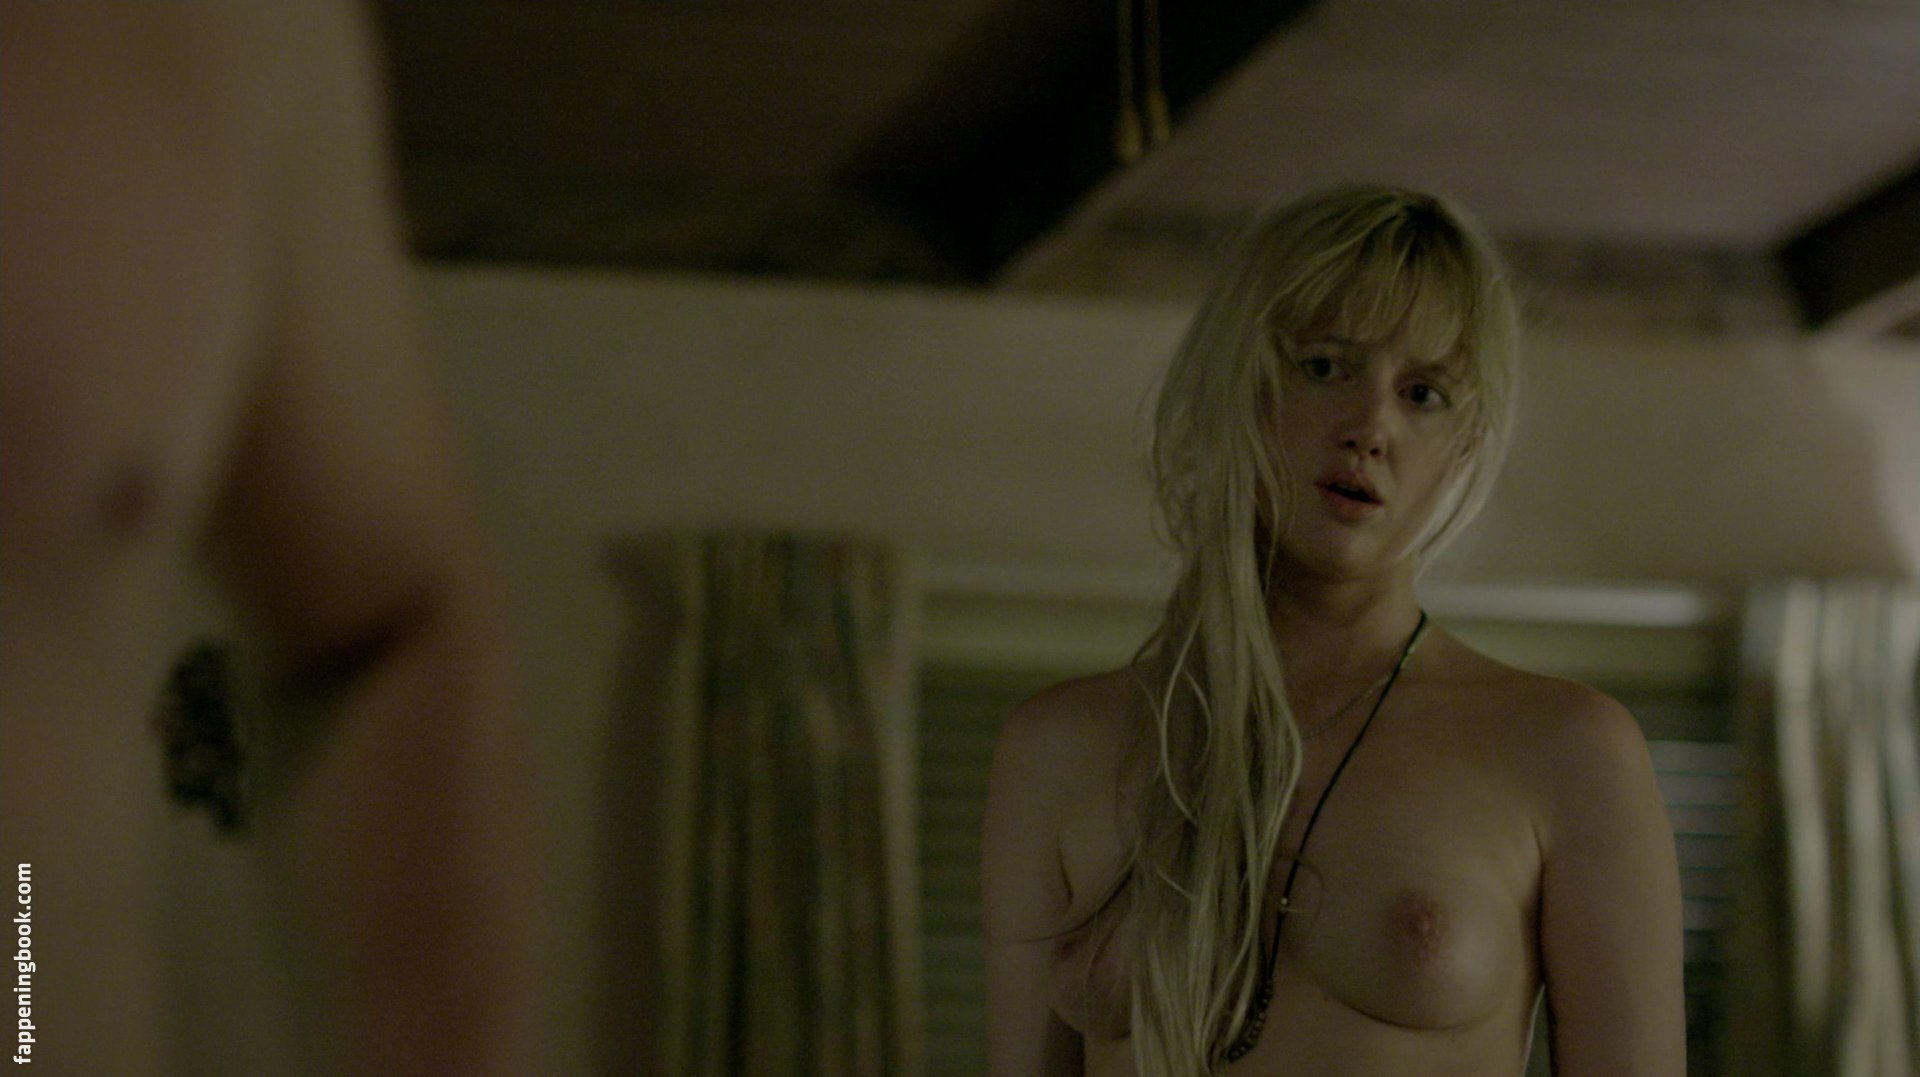 Andrea Riseborough Nude andrea riseborough nude, sexy, the fappening, uncensored